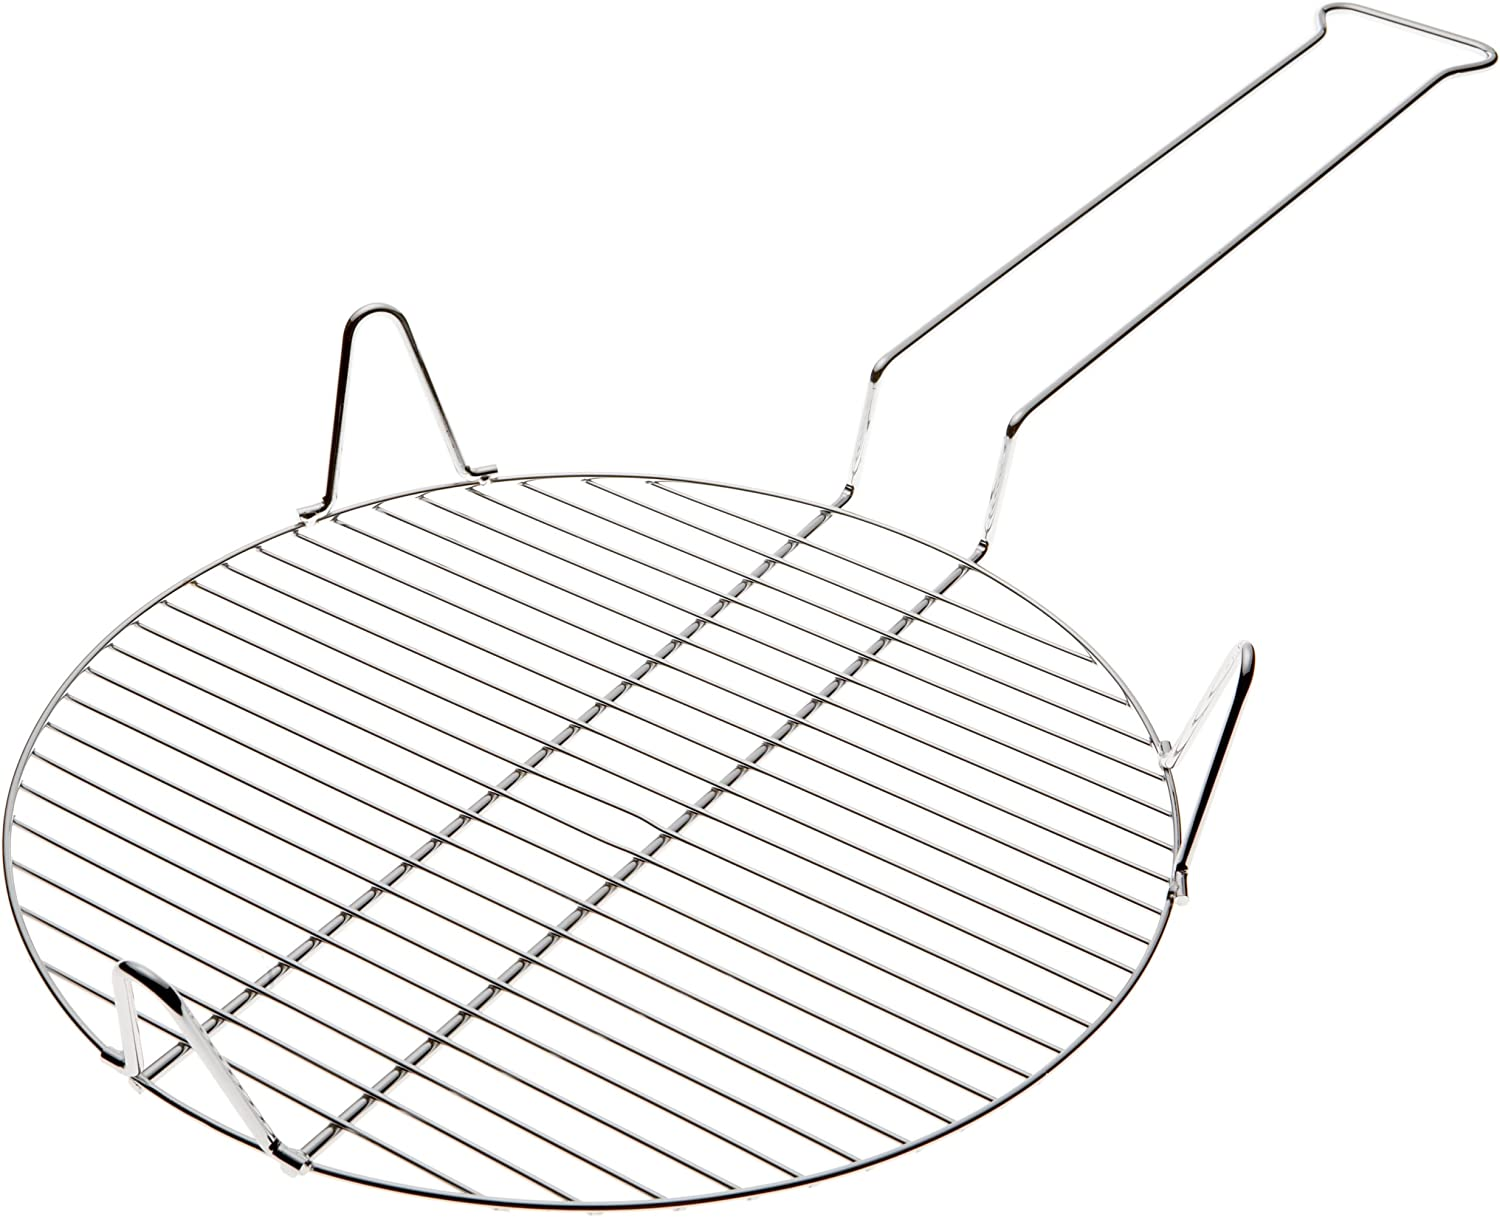 Chrome Plated Steel Romes #65 14 Inch Outdoor Pizza Grill